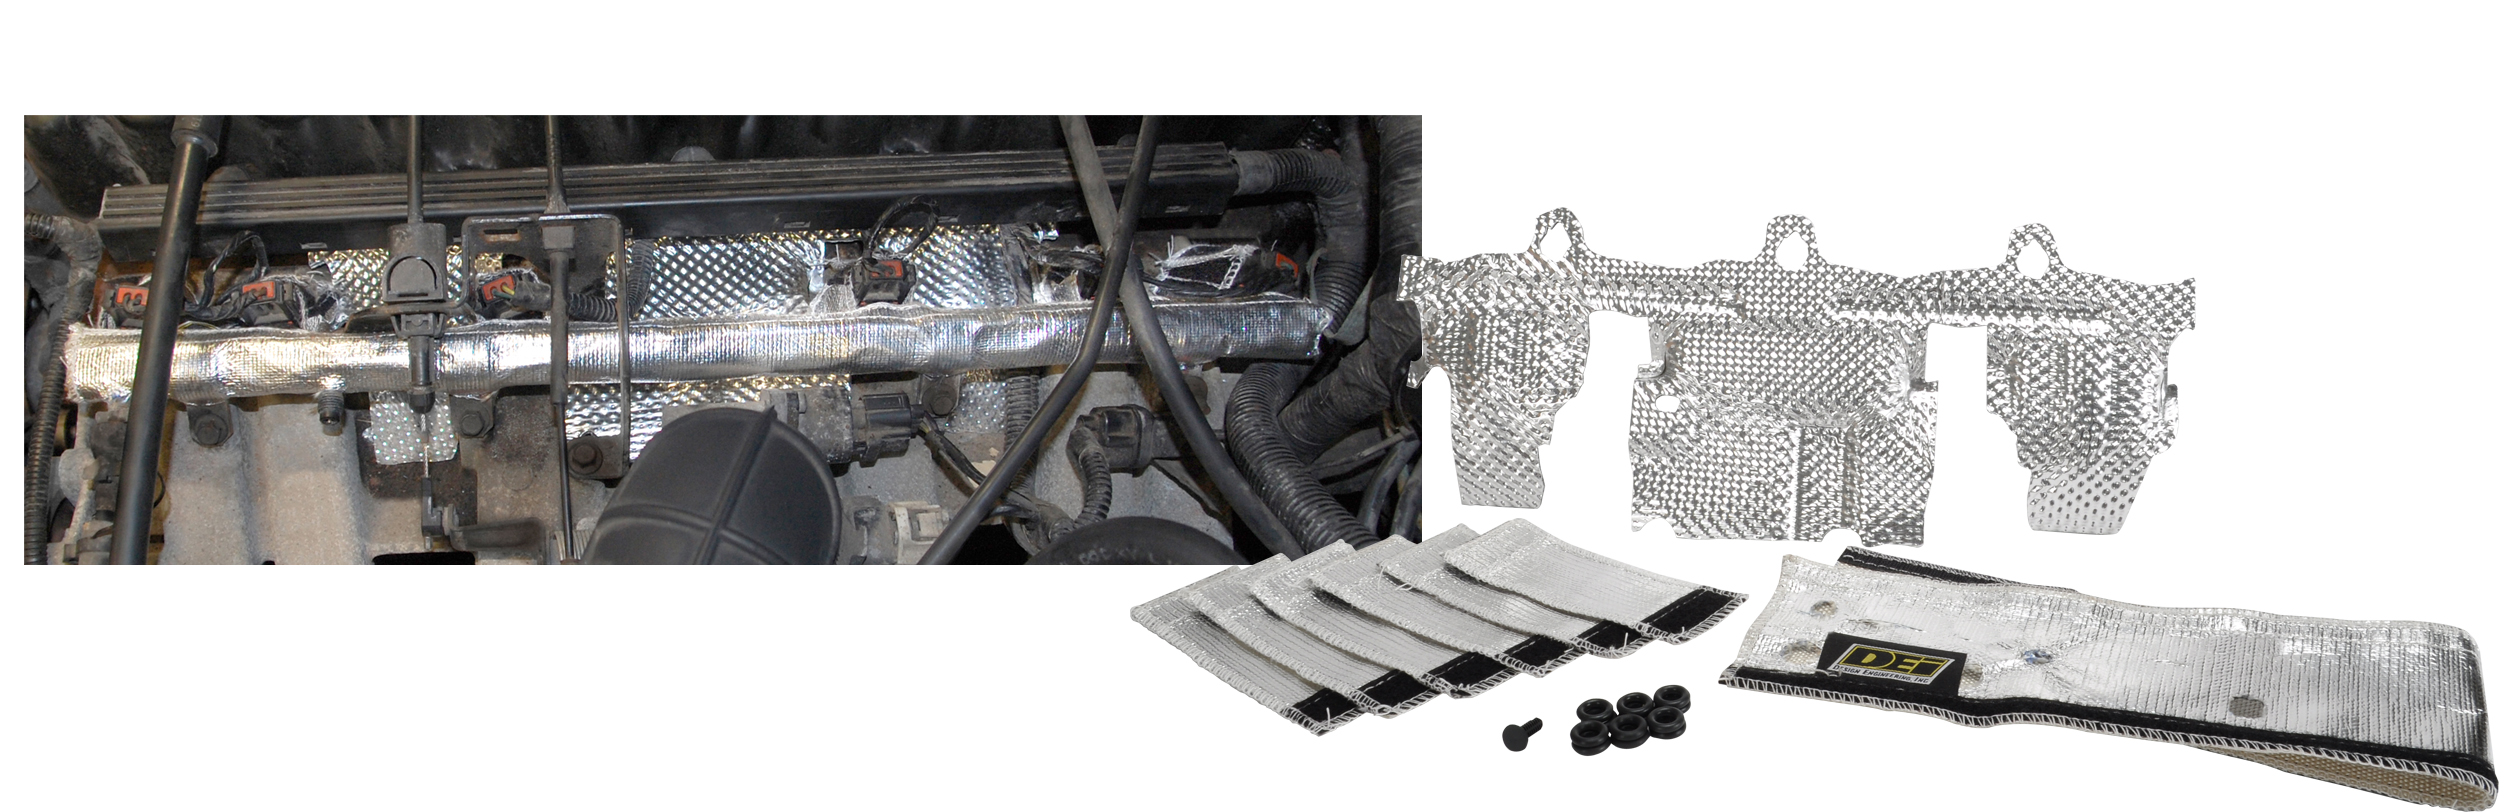 Jeep Fuel Rail Kit Image